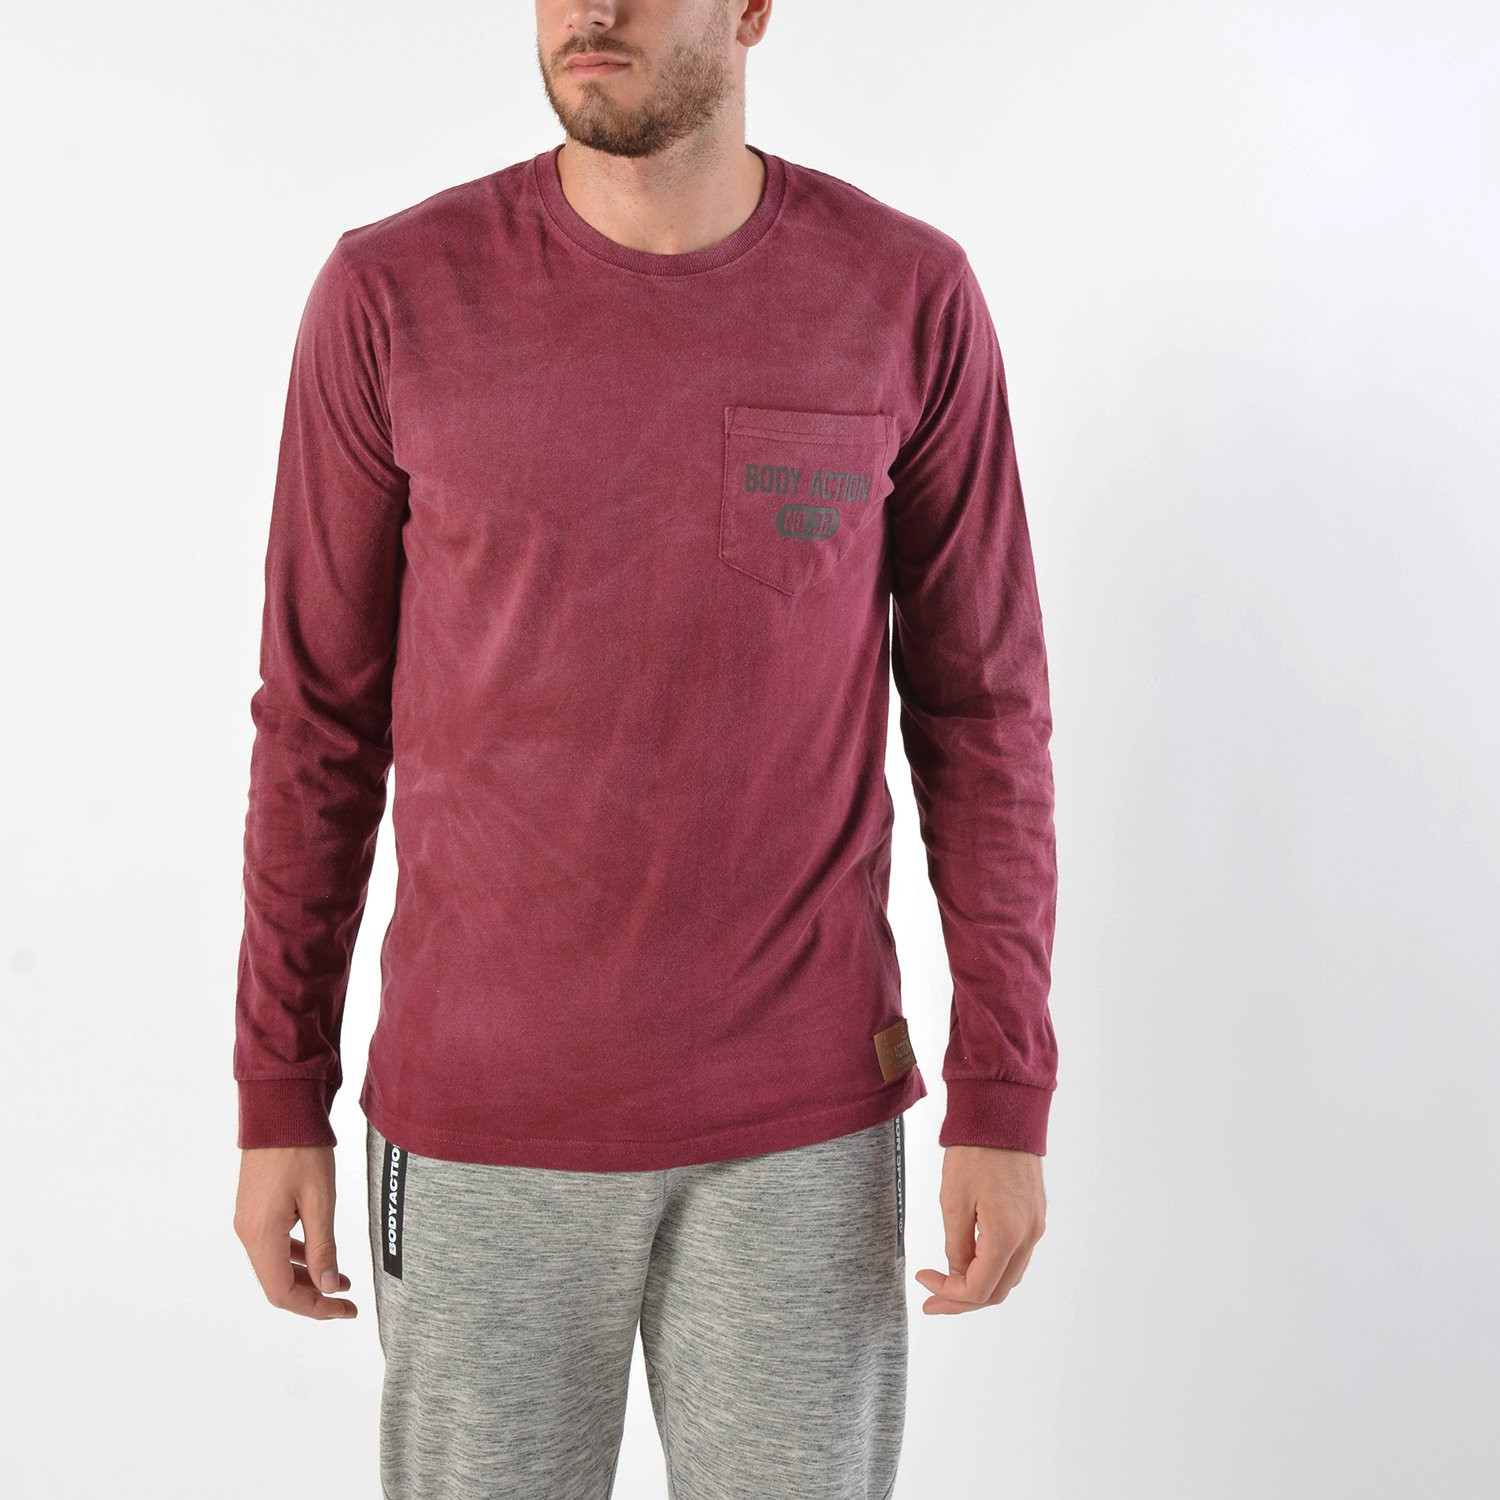 Body Action Men's Washed Long-Sleeve Tee (9000016608_8526)